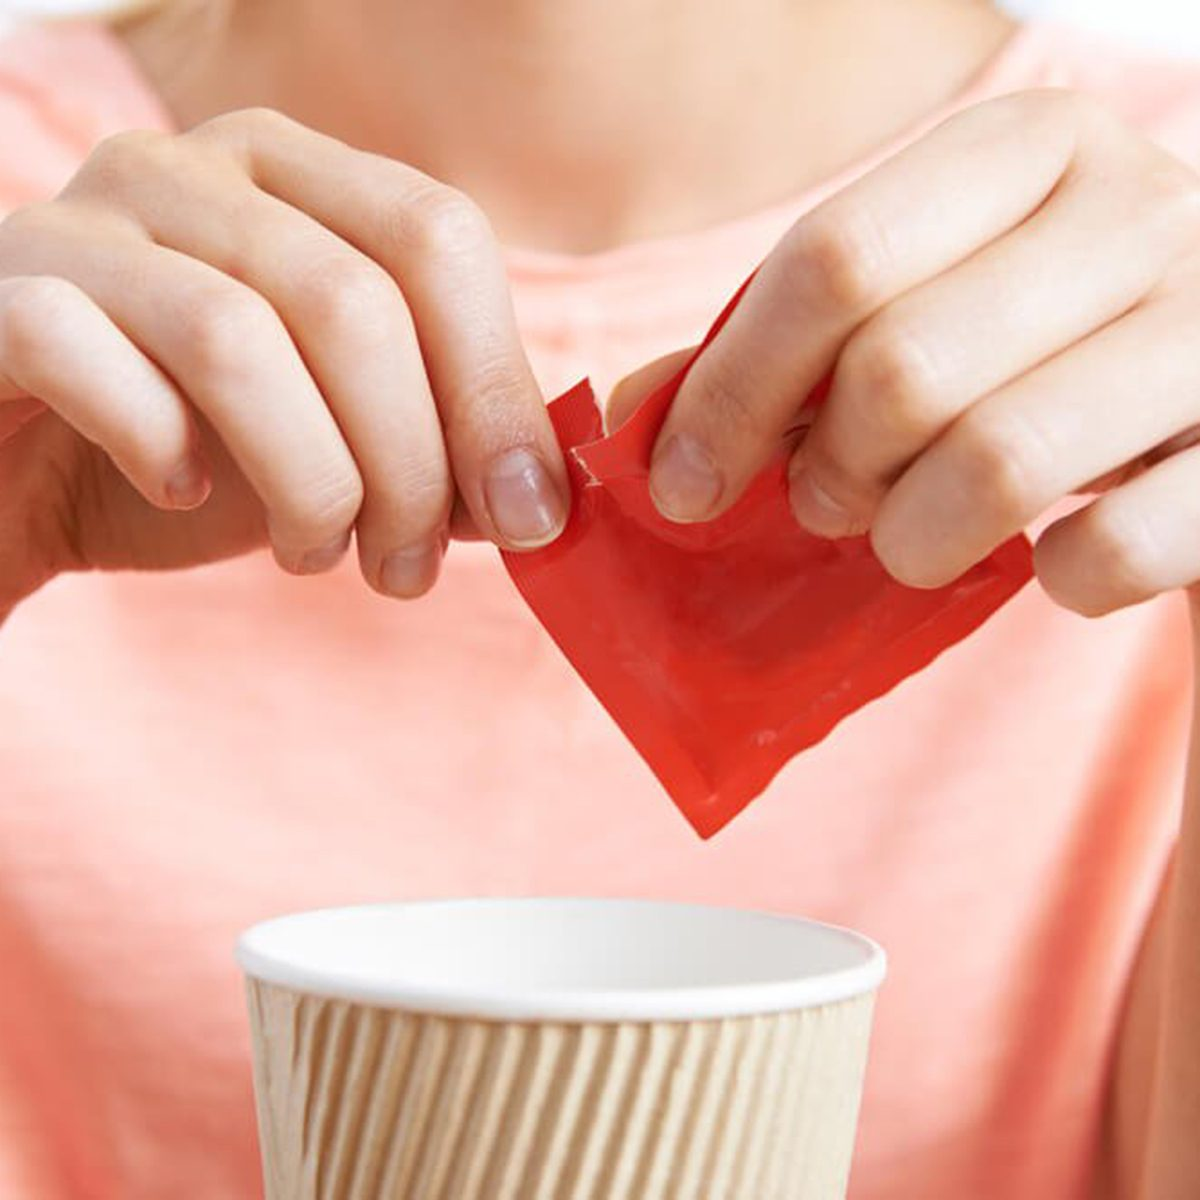 Emptying a sweetener packet into a coffee